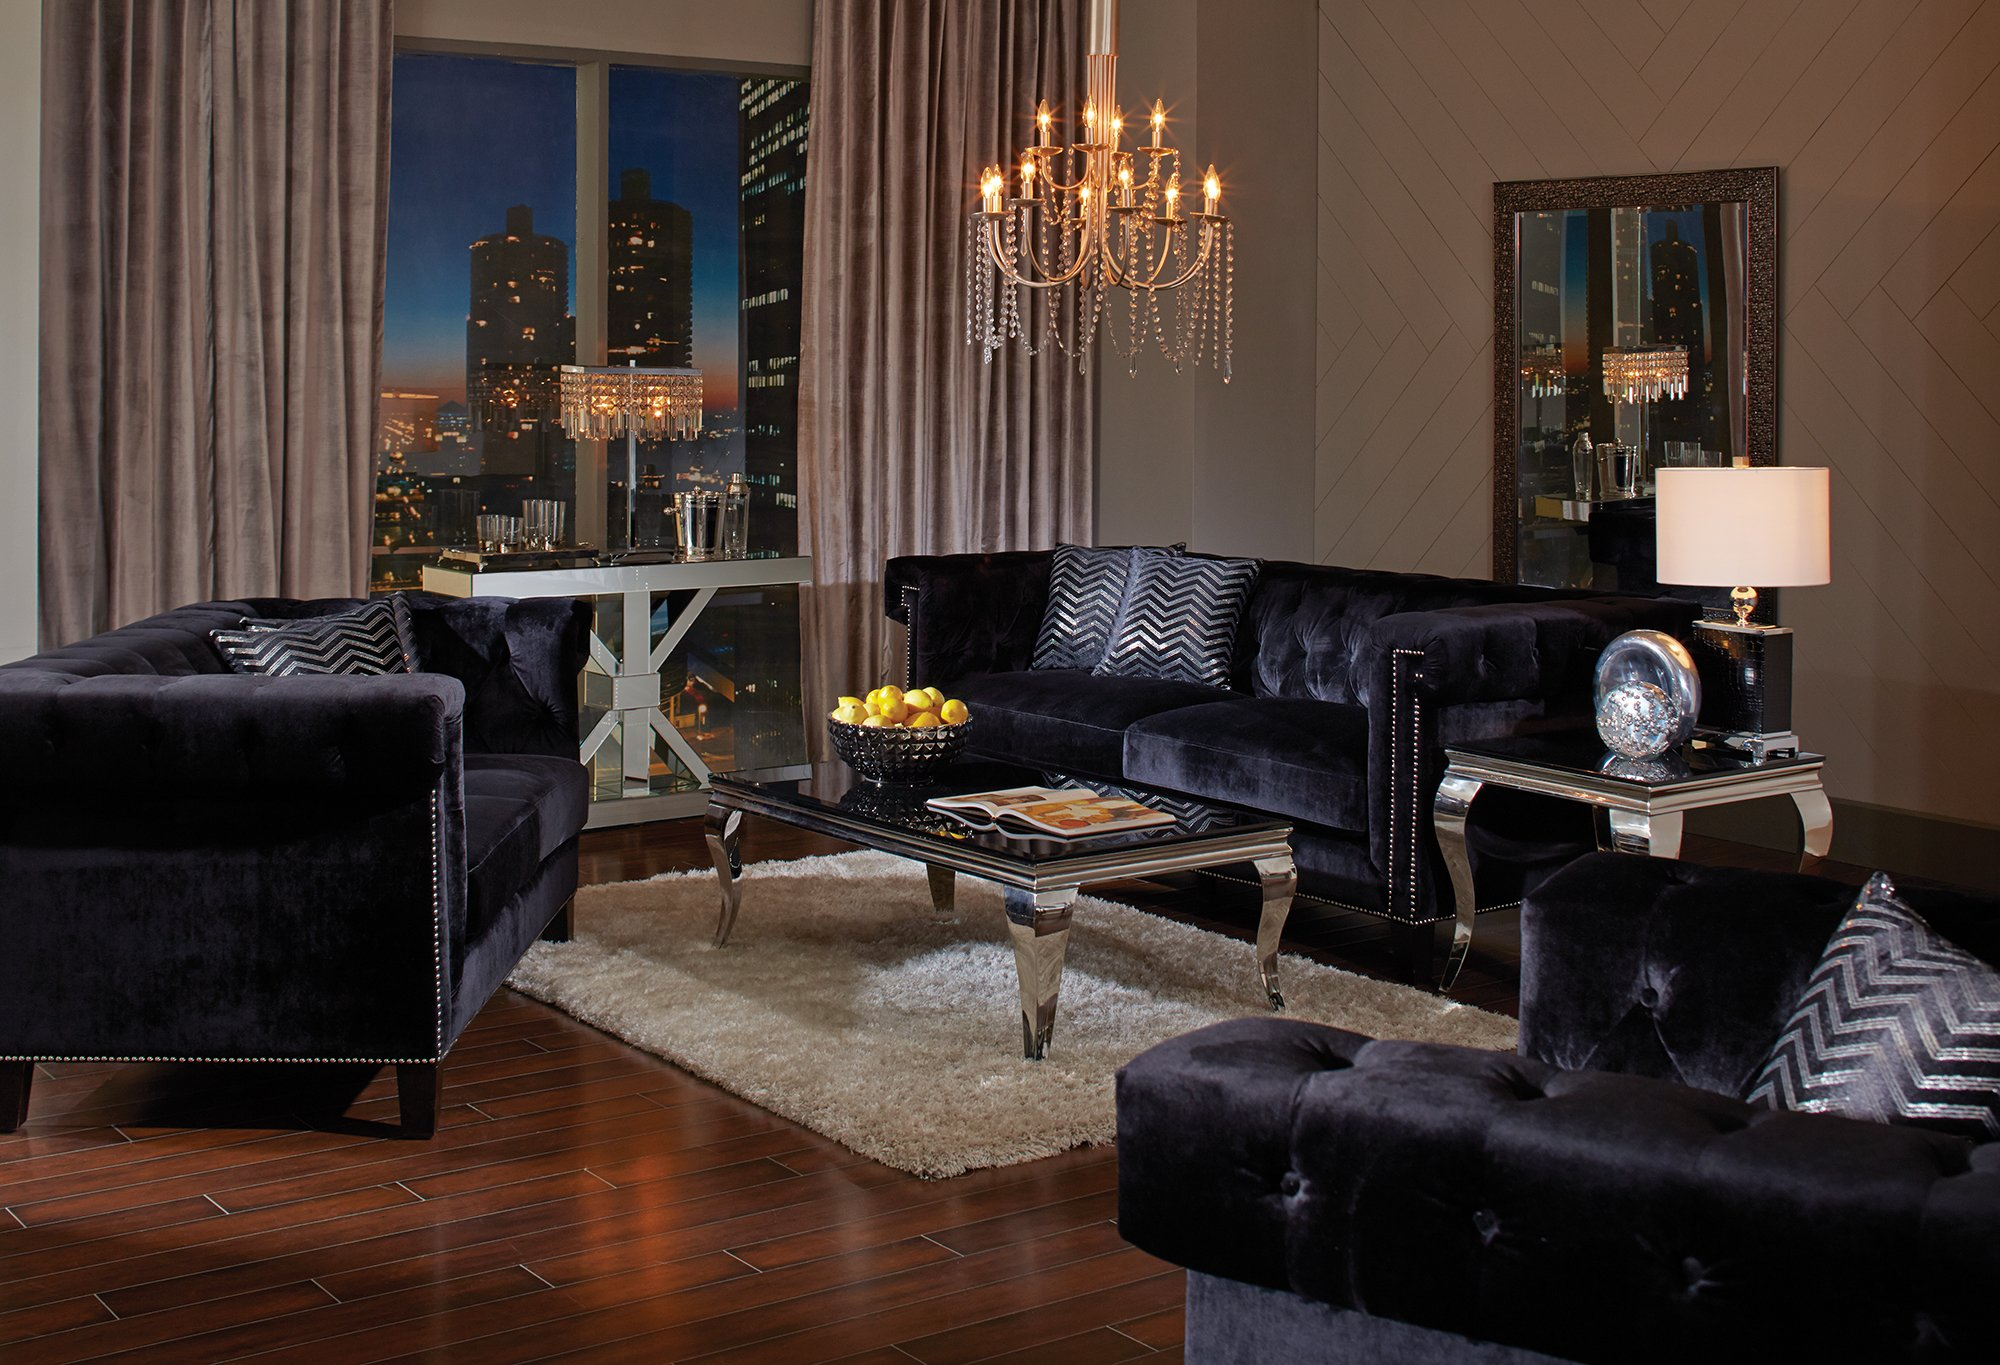 Coaster Reventlow 505818 67'' Loveseat with Accent Pillows Greek Key Nailhead Trim Design Reversible Pocket Coil Seating and Velvet Upholstery in Black by Coaster Home Furnishings